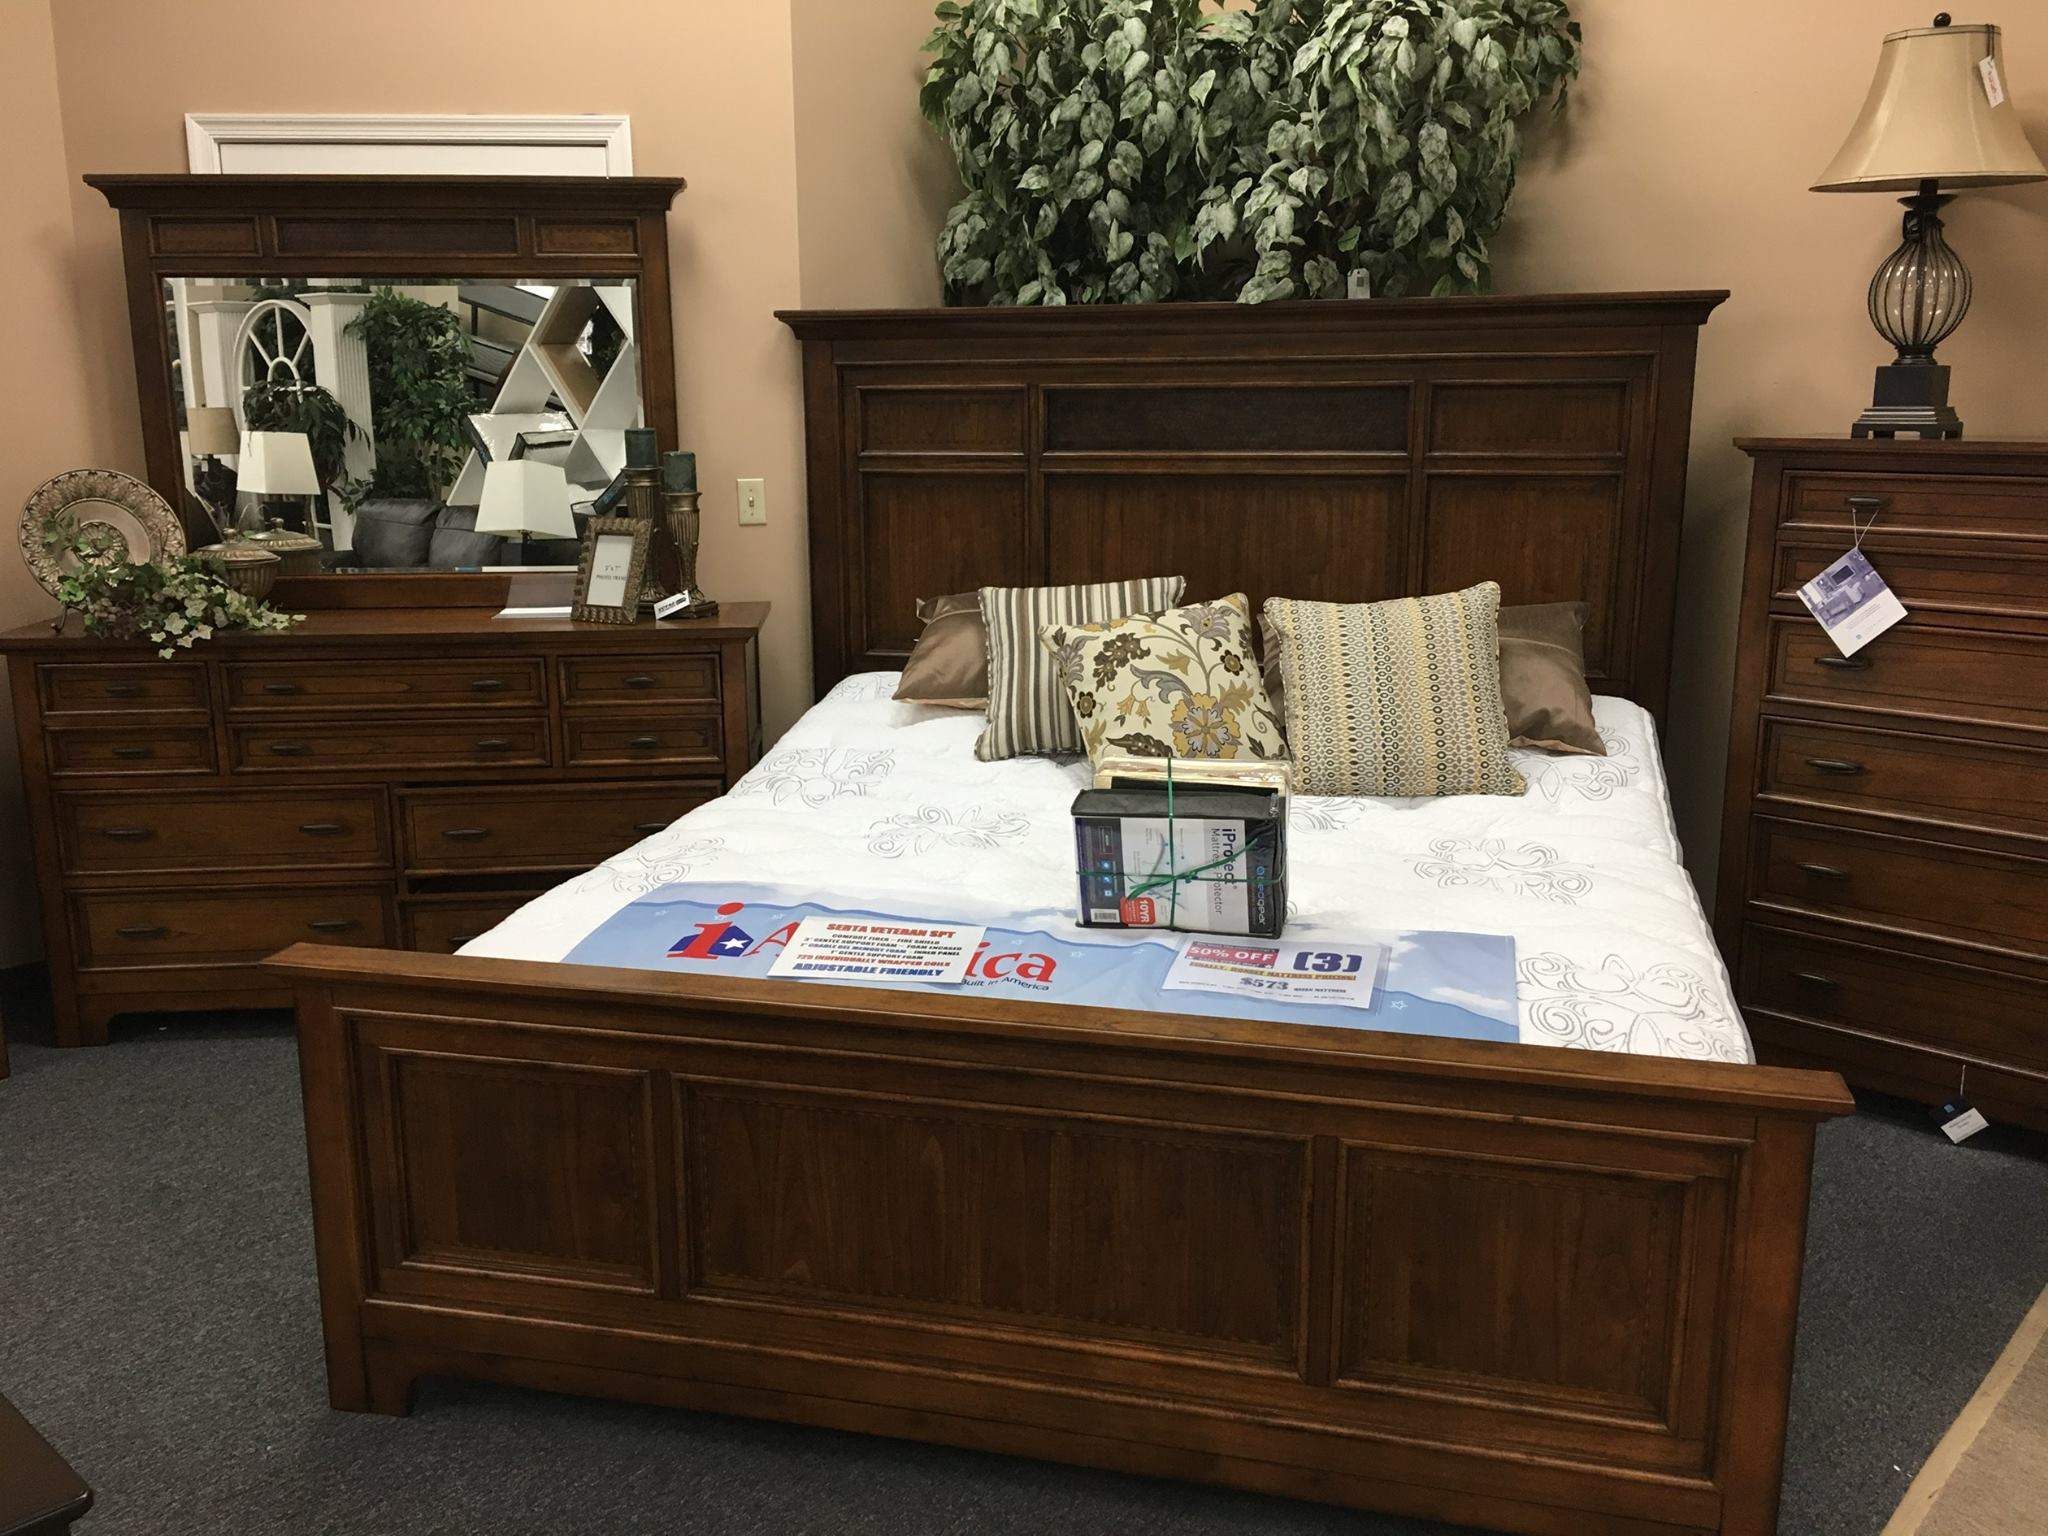 Craftmatic Closeout Sale - Apartment Home Decor  Craftmatic Bed Store Locations